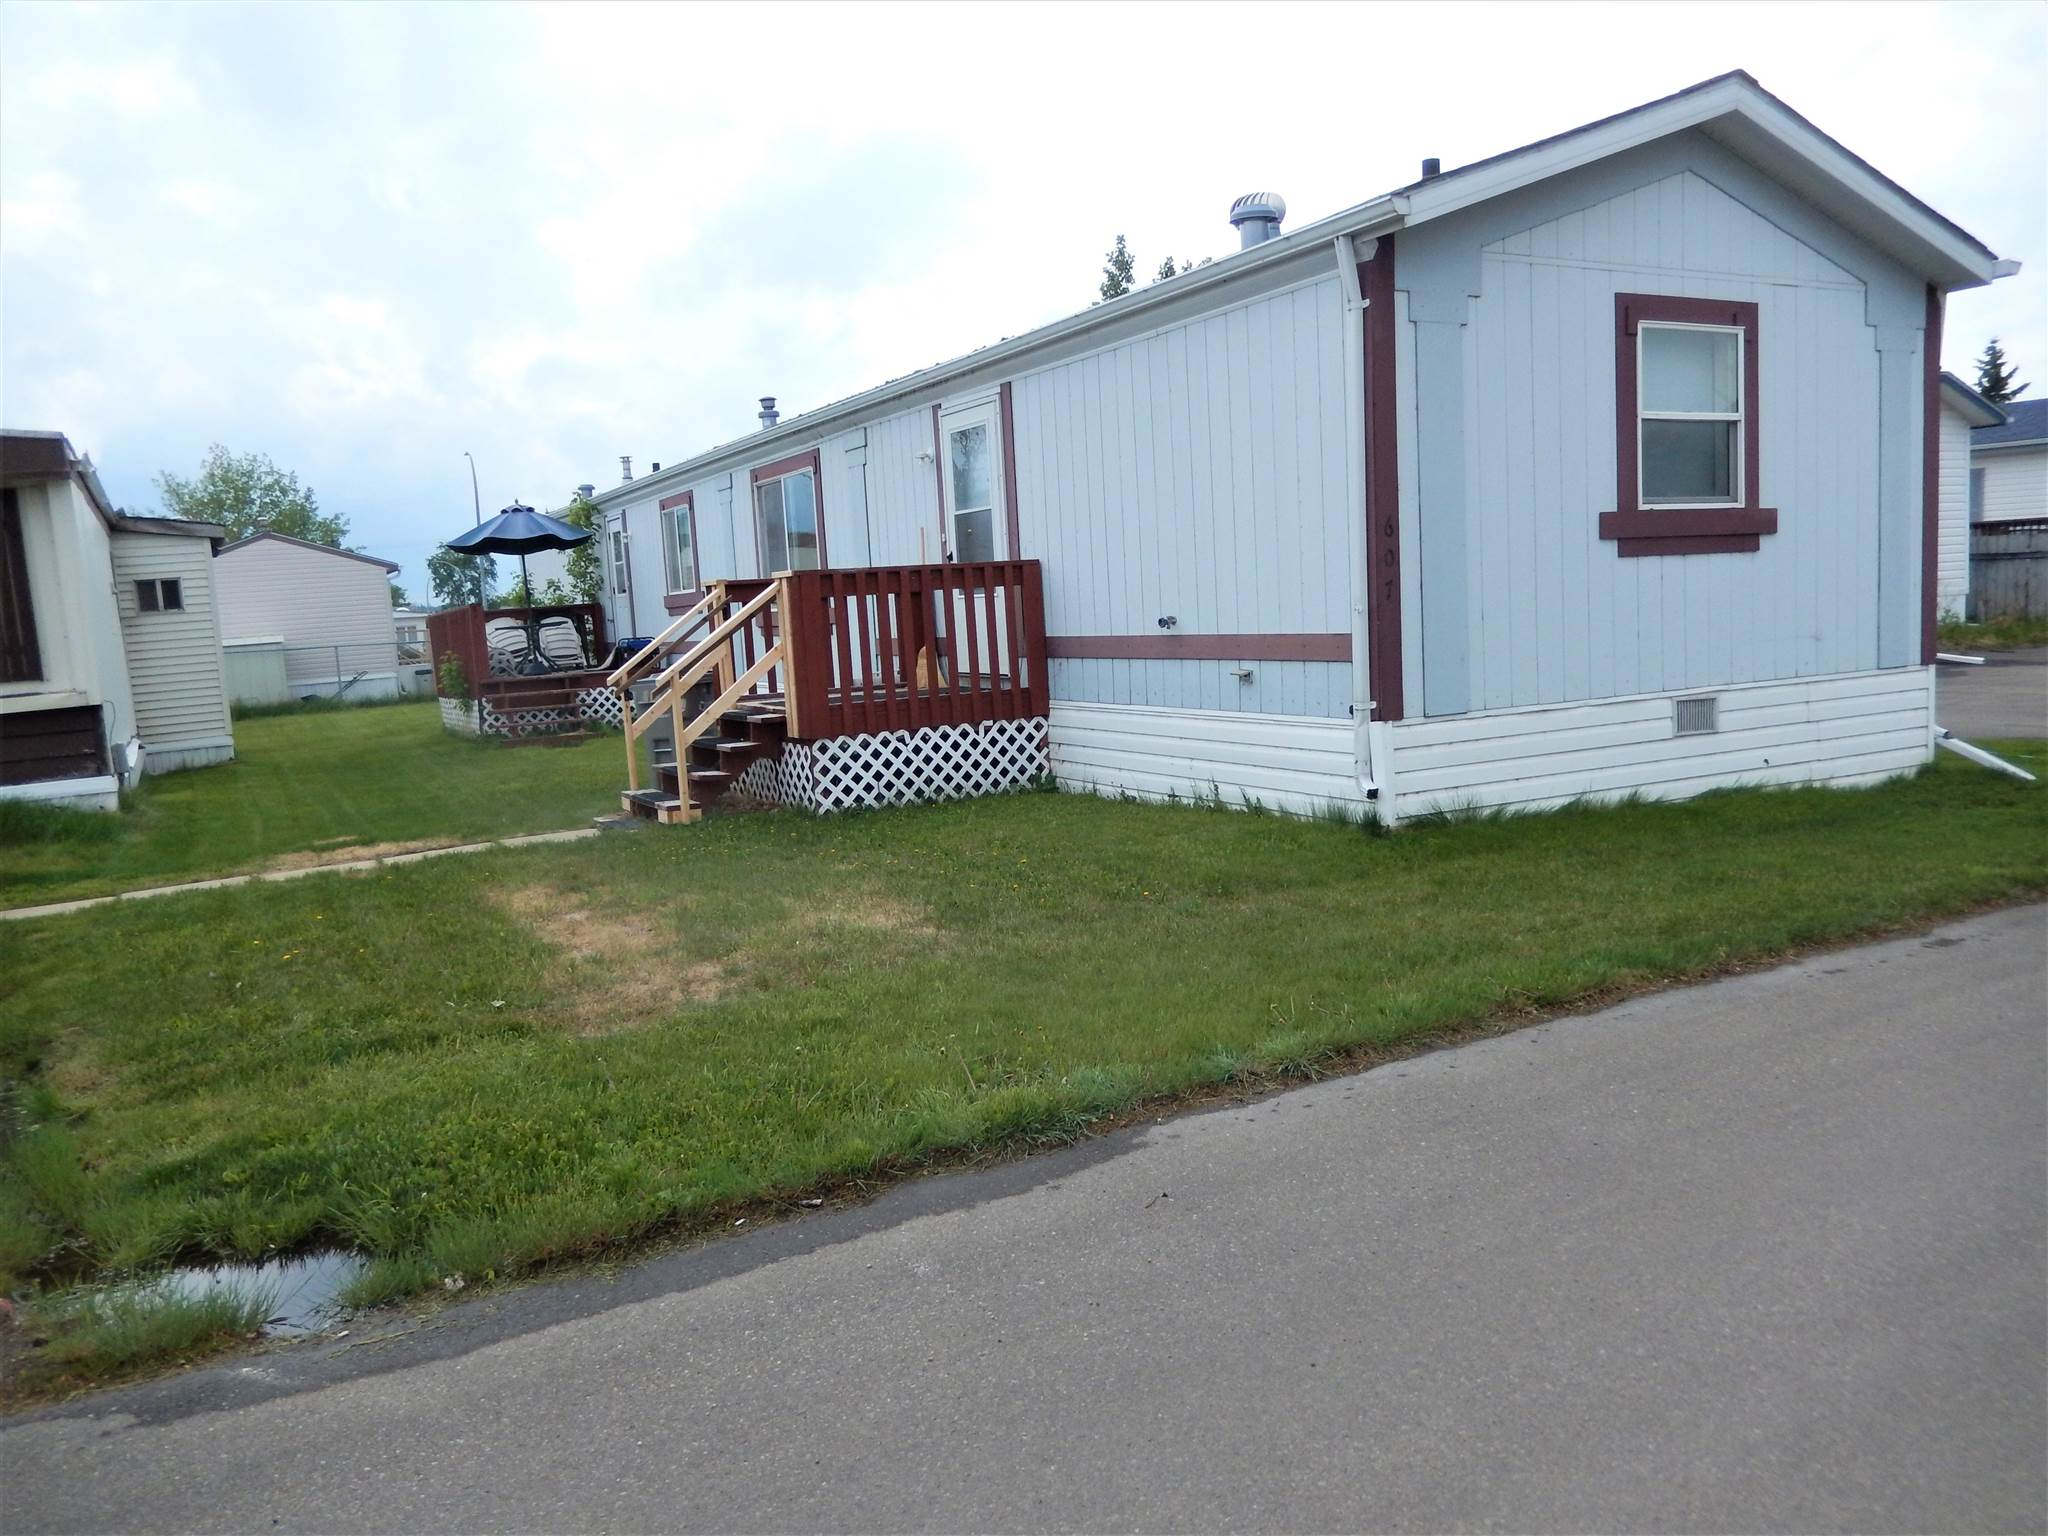 This 3 BEDR, 2 BATH home is super affordable. The KITCHEN has a CORNER PANTRY and a spacious DINING RM.  The Master Bedr sits at the back of the home  and has a WALK IN CLOSET. In the ENSUITE, sits a CORNER JACUZZI TUB.   On the front end of the home, is the MAIN BATHR & 2 more BEDRS.  There is a SEPARATE LAUNDRY ROOM which leads out the back door.  The FURNACE has been well maintained over the years and both TOILETS were replaced as well as some PLUMBING underneath & the HEAT TAPE (2020).